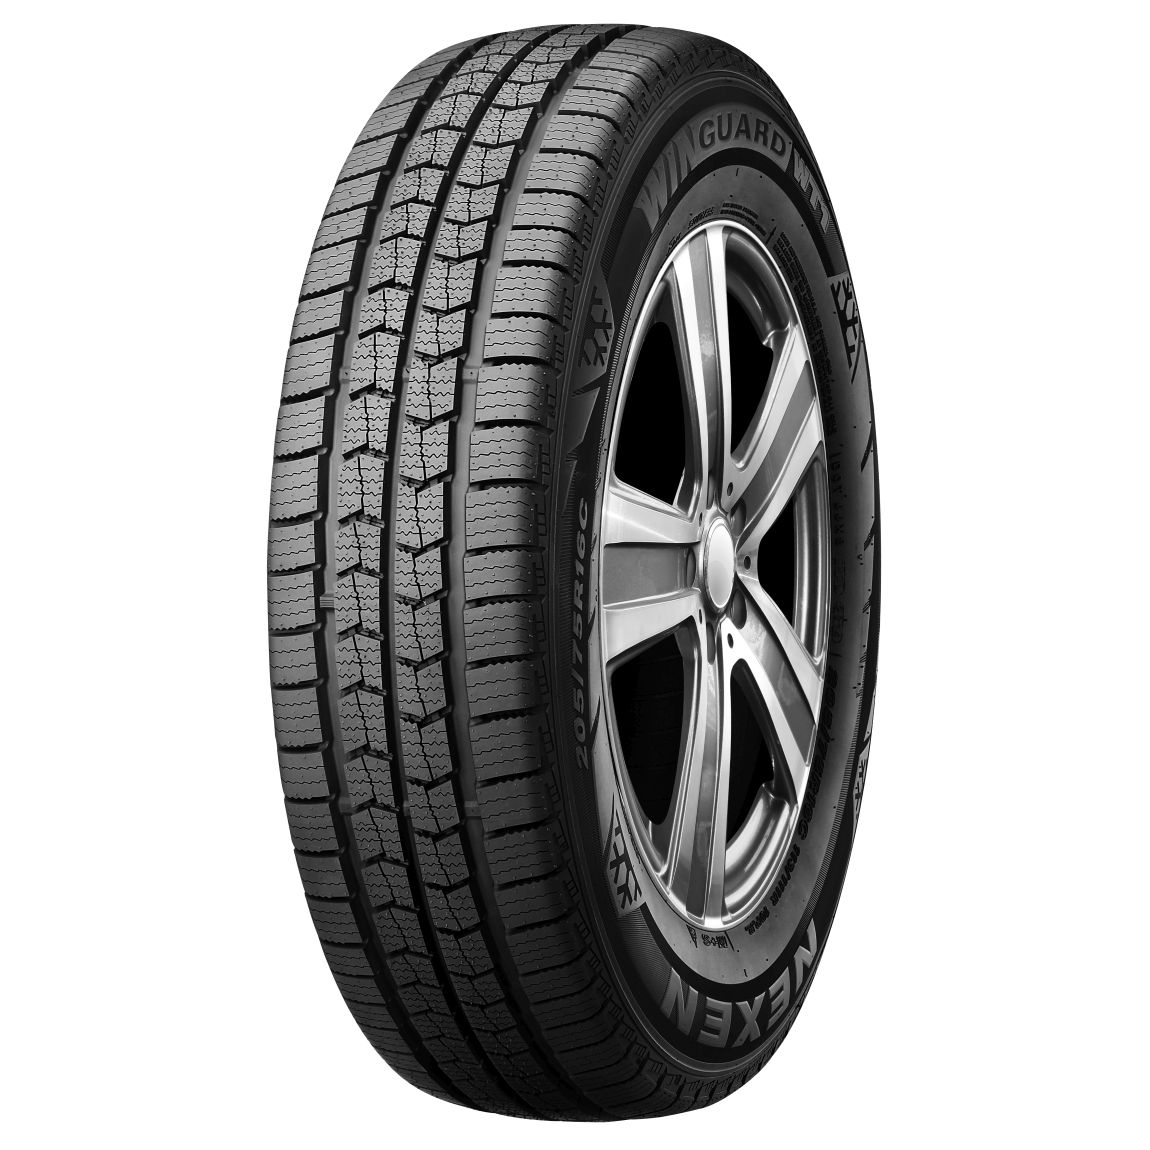 Зимняя шина Nexen WINGUARD WT1 225/65 R16 112/110R